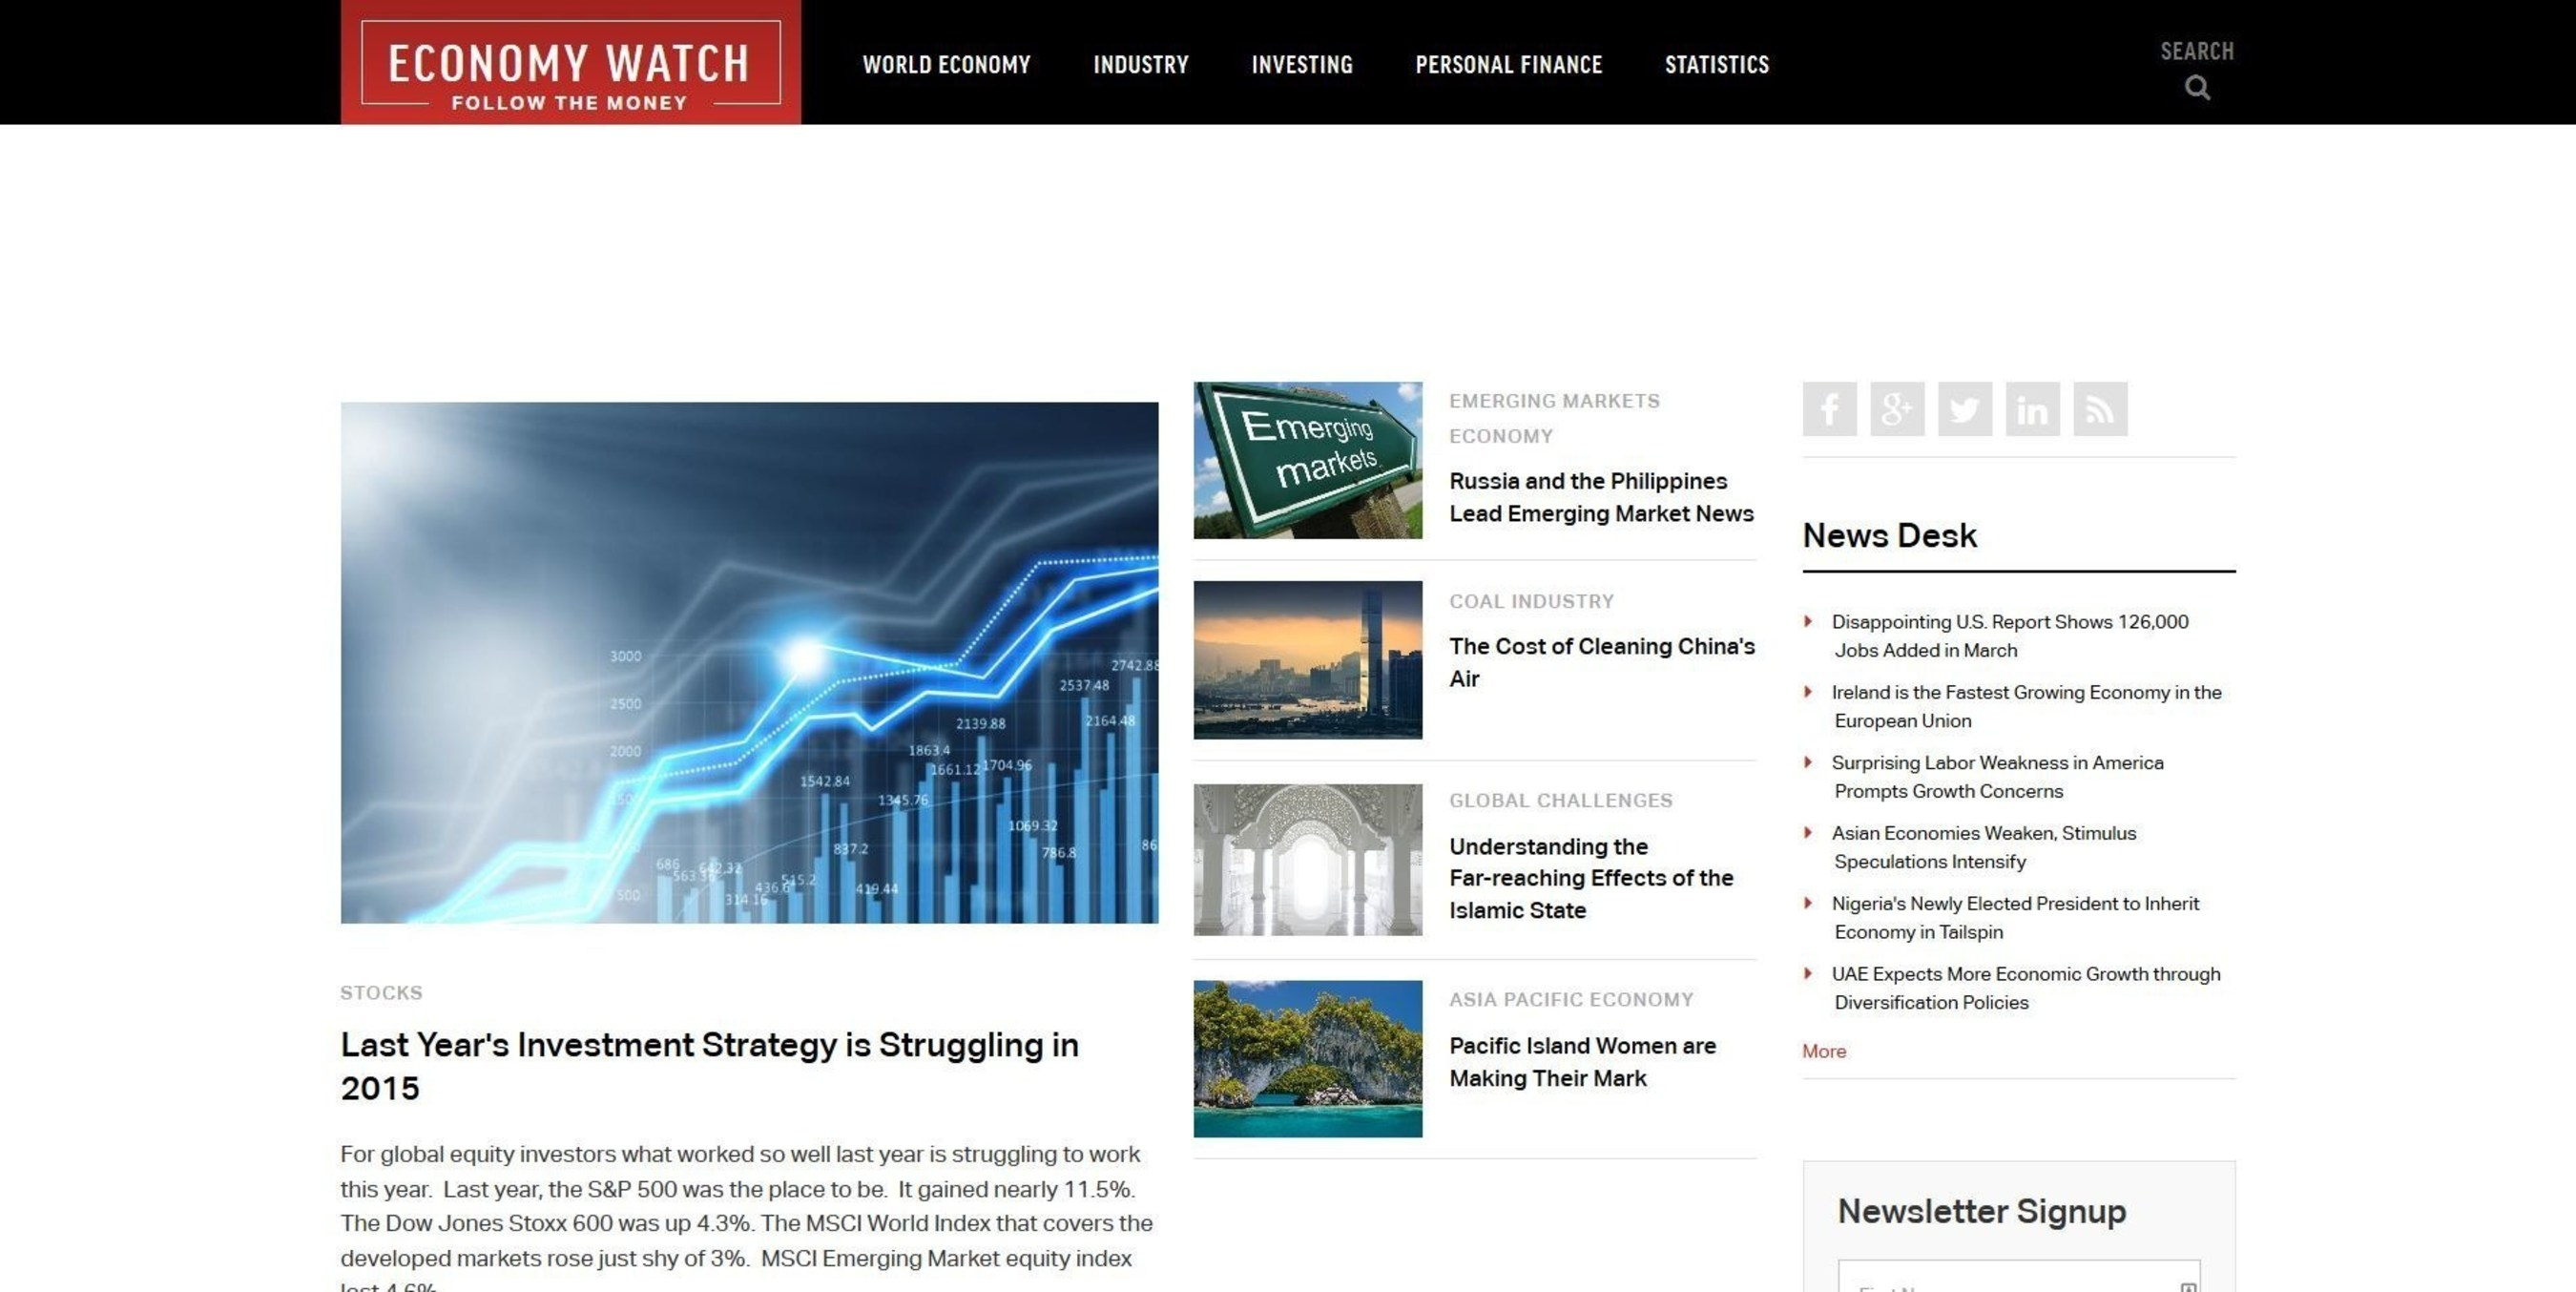 EconomyWatch.com Announces Launch of Their Newly Redesigned Website